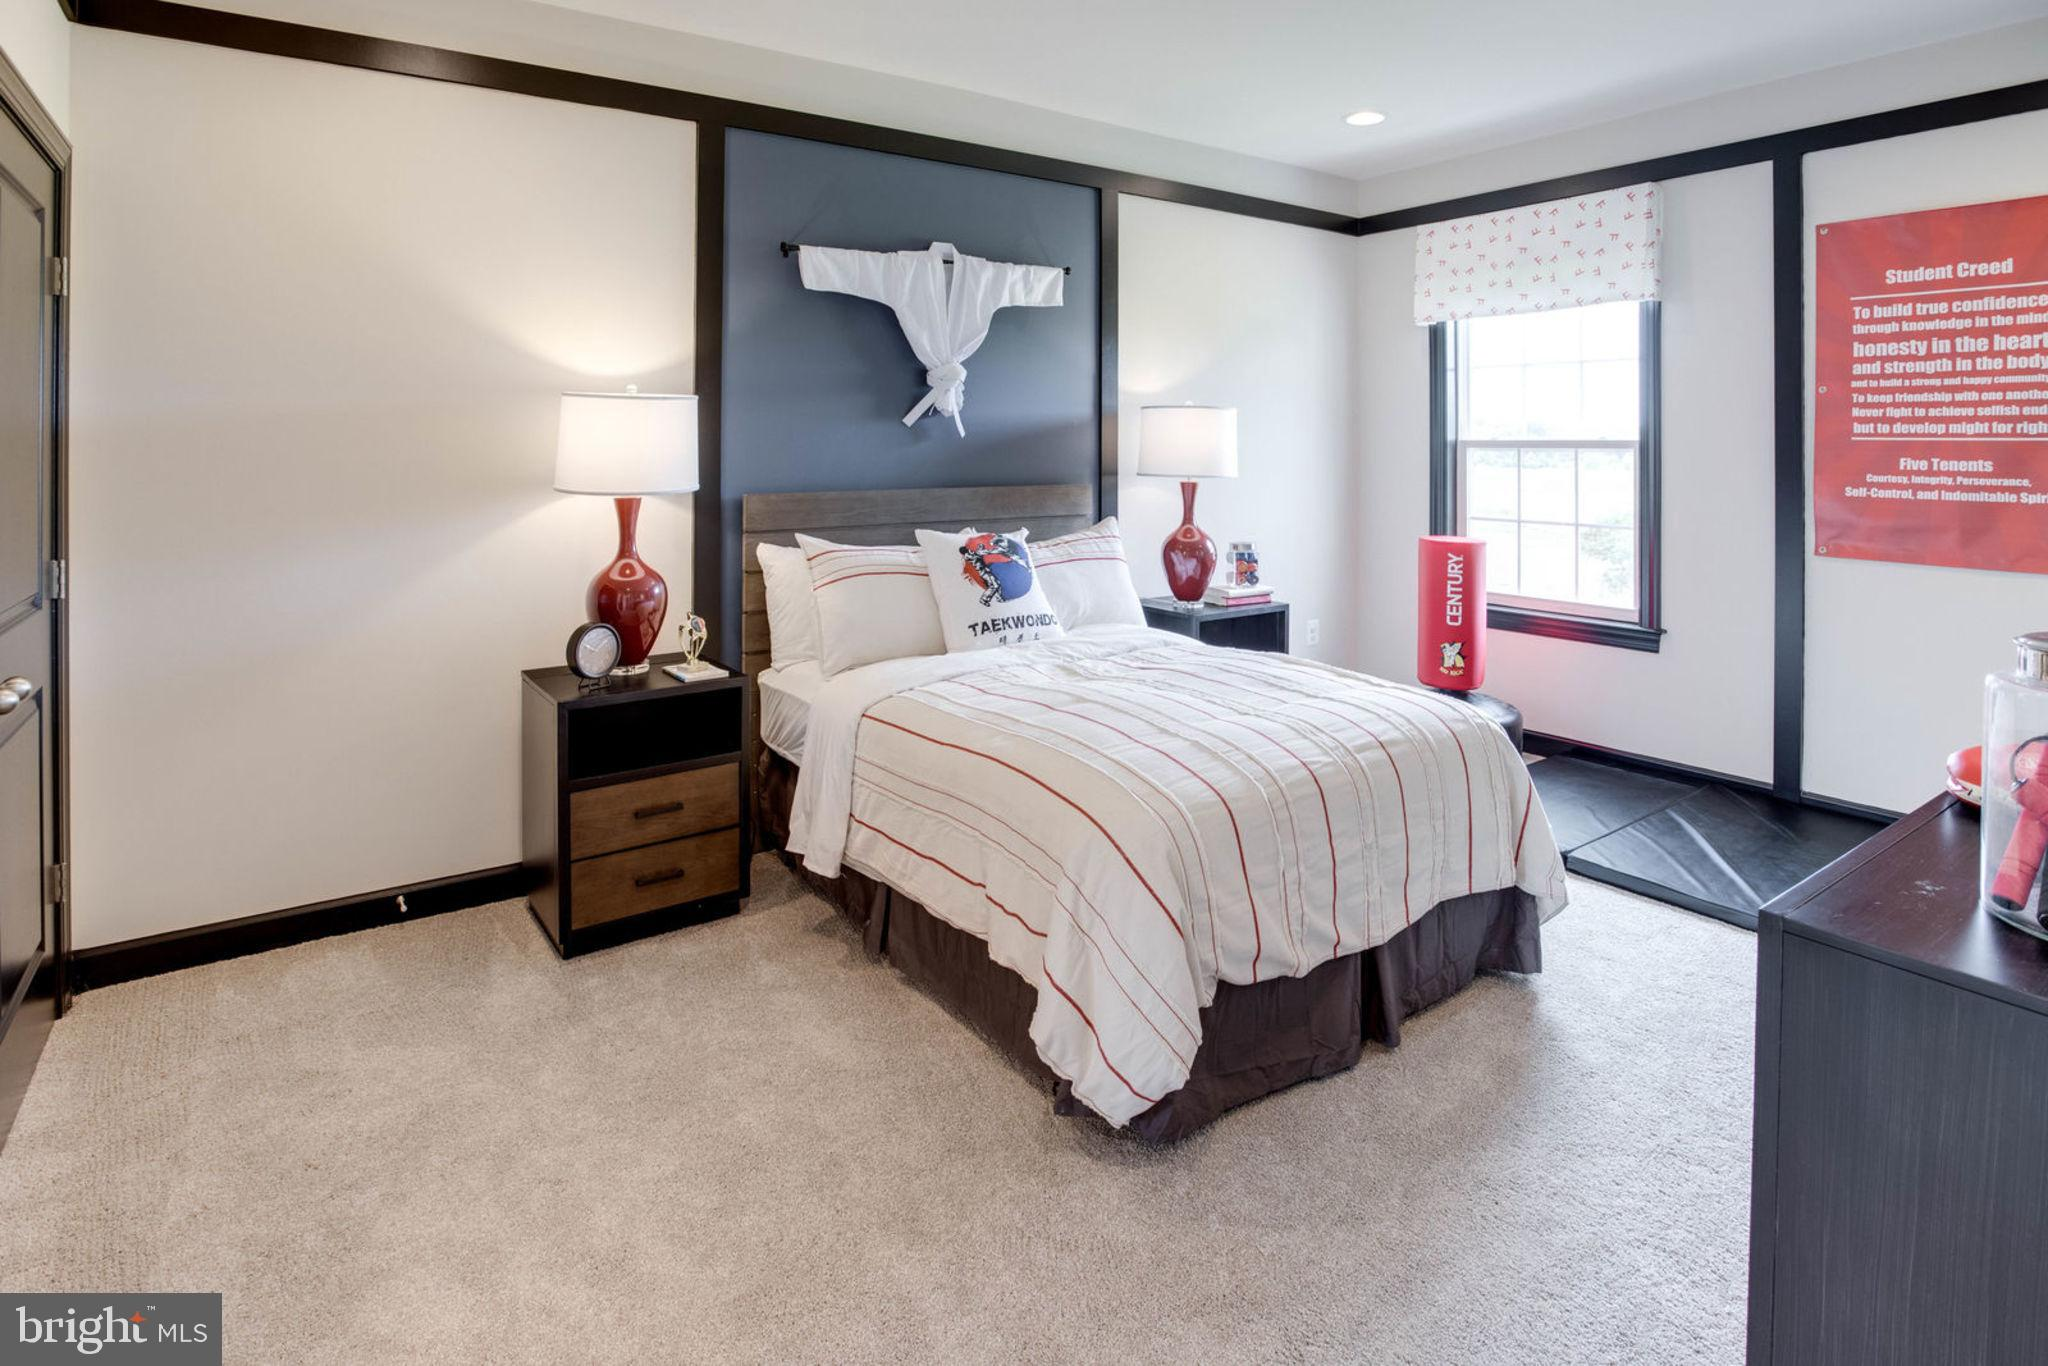 01 Pender Court, Fredericksburg, VA 22406 | Integro Real Estate on home bathroom plans, home architecture, group home plans, house plans, home furniture, home hardware plans, home design, family home plans, home apartment plans, 2012 most popular home plans, country kitchen home plans, energy homes plans, michael daily home plans, designing home plans, home roof plans, home security plans, home lighting plans, home plans 1940, home building, garage plans,